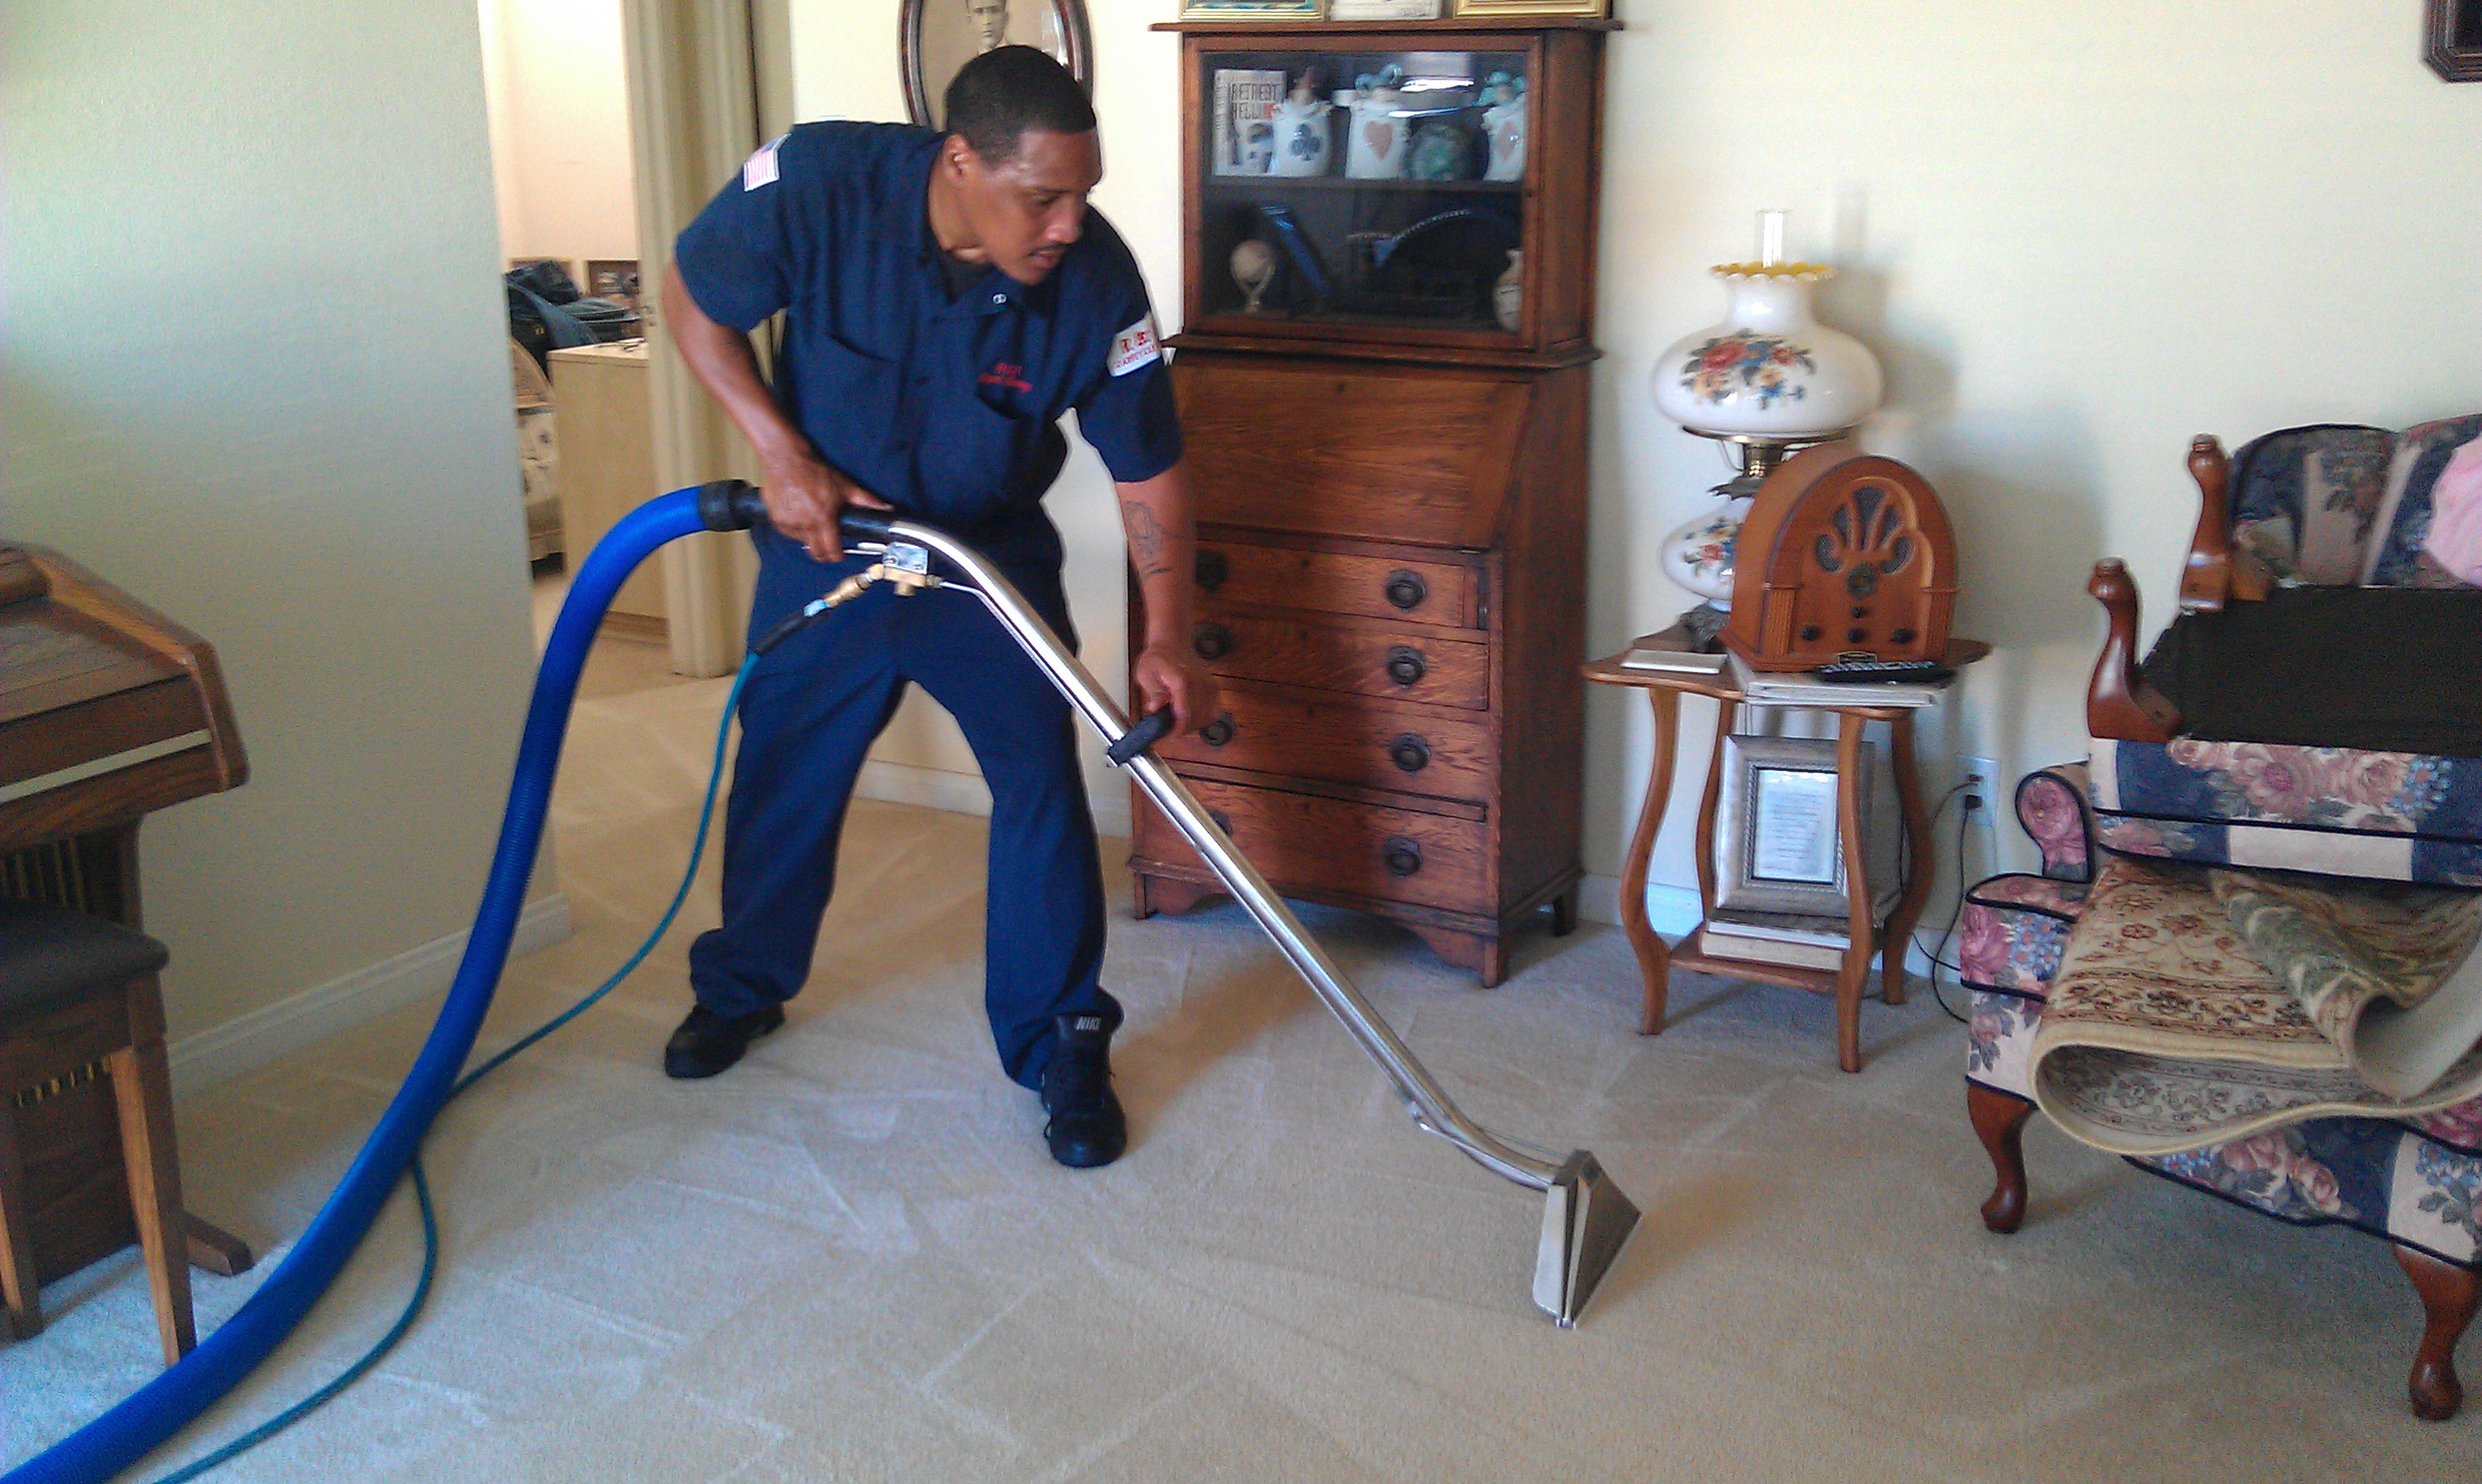 R&R Carpet Cleaning Services 3639 Midway Dr # 126, San Diego, CA 92110 - YP.com